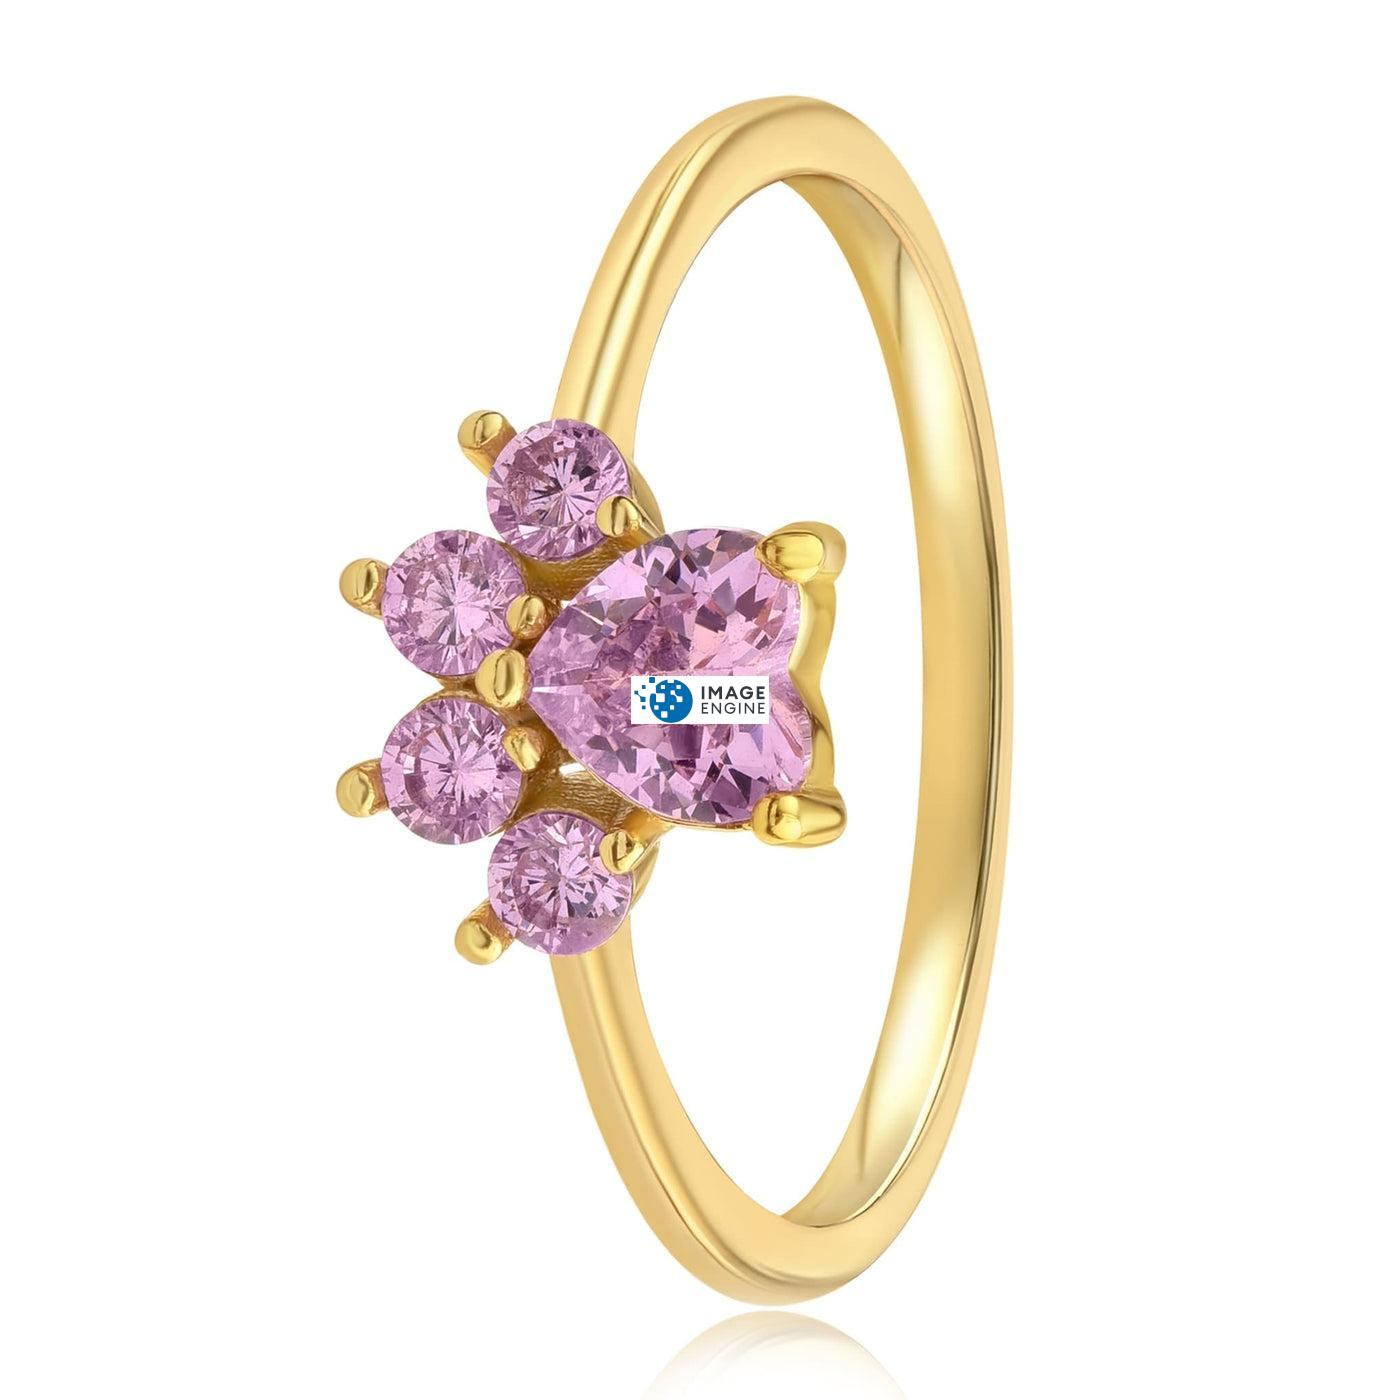 Bella Paw Rose Quartz Ring - Side View - 18K Yellow Gold Vermeil